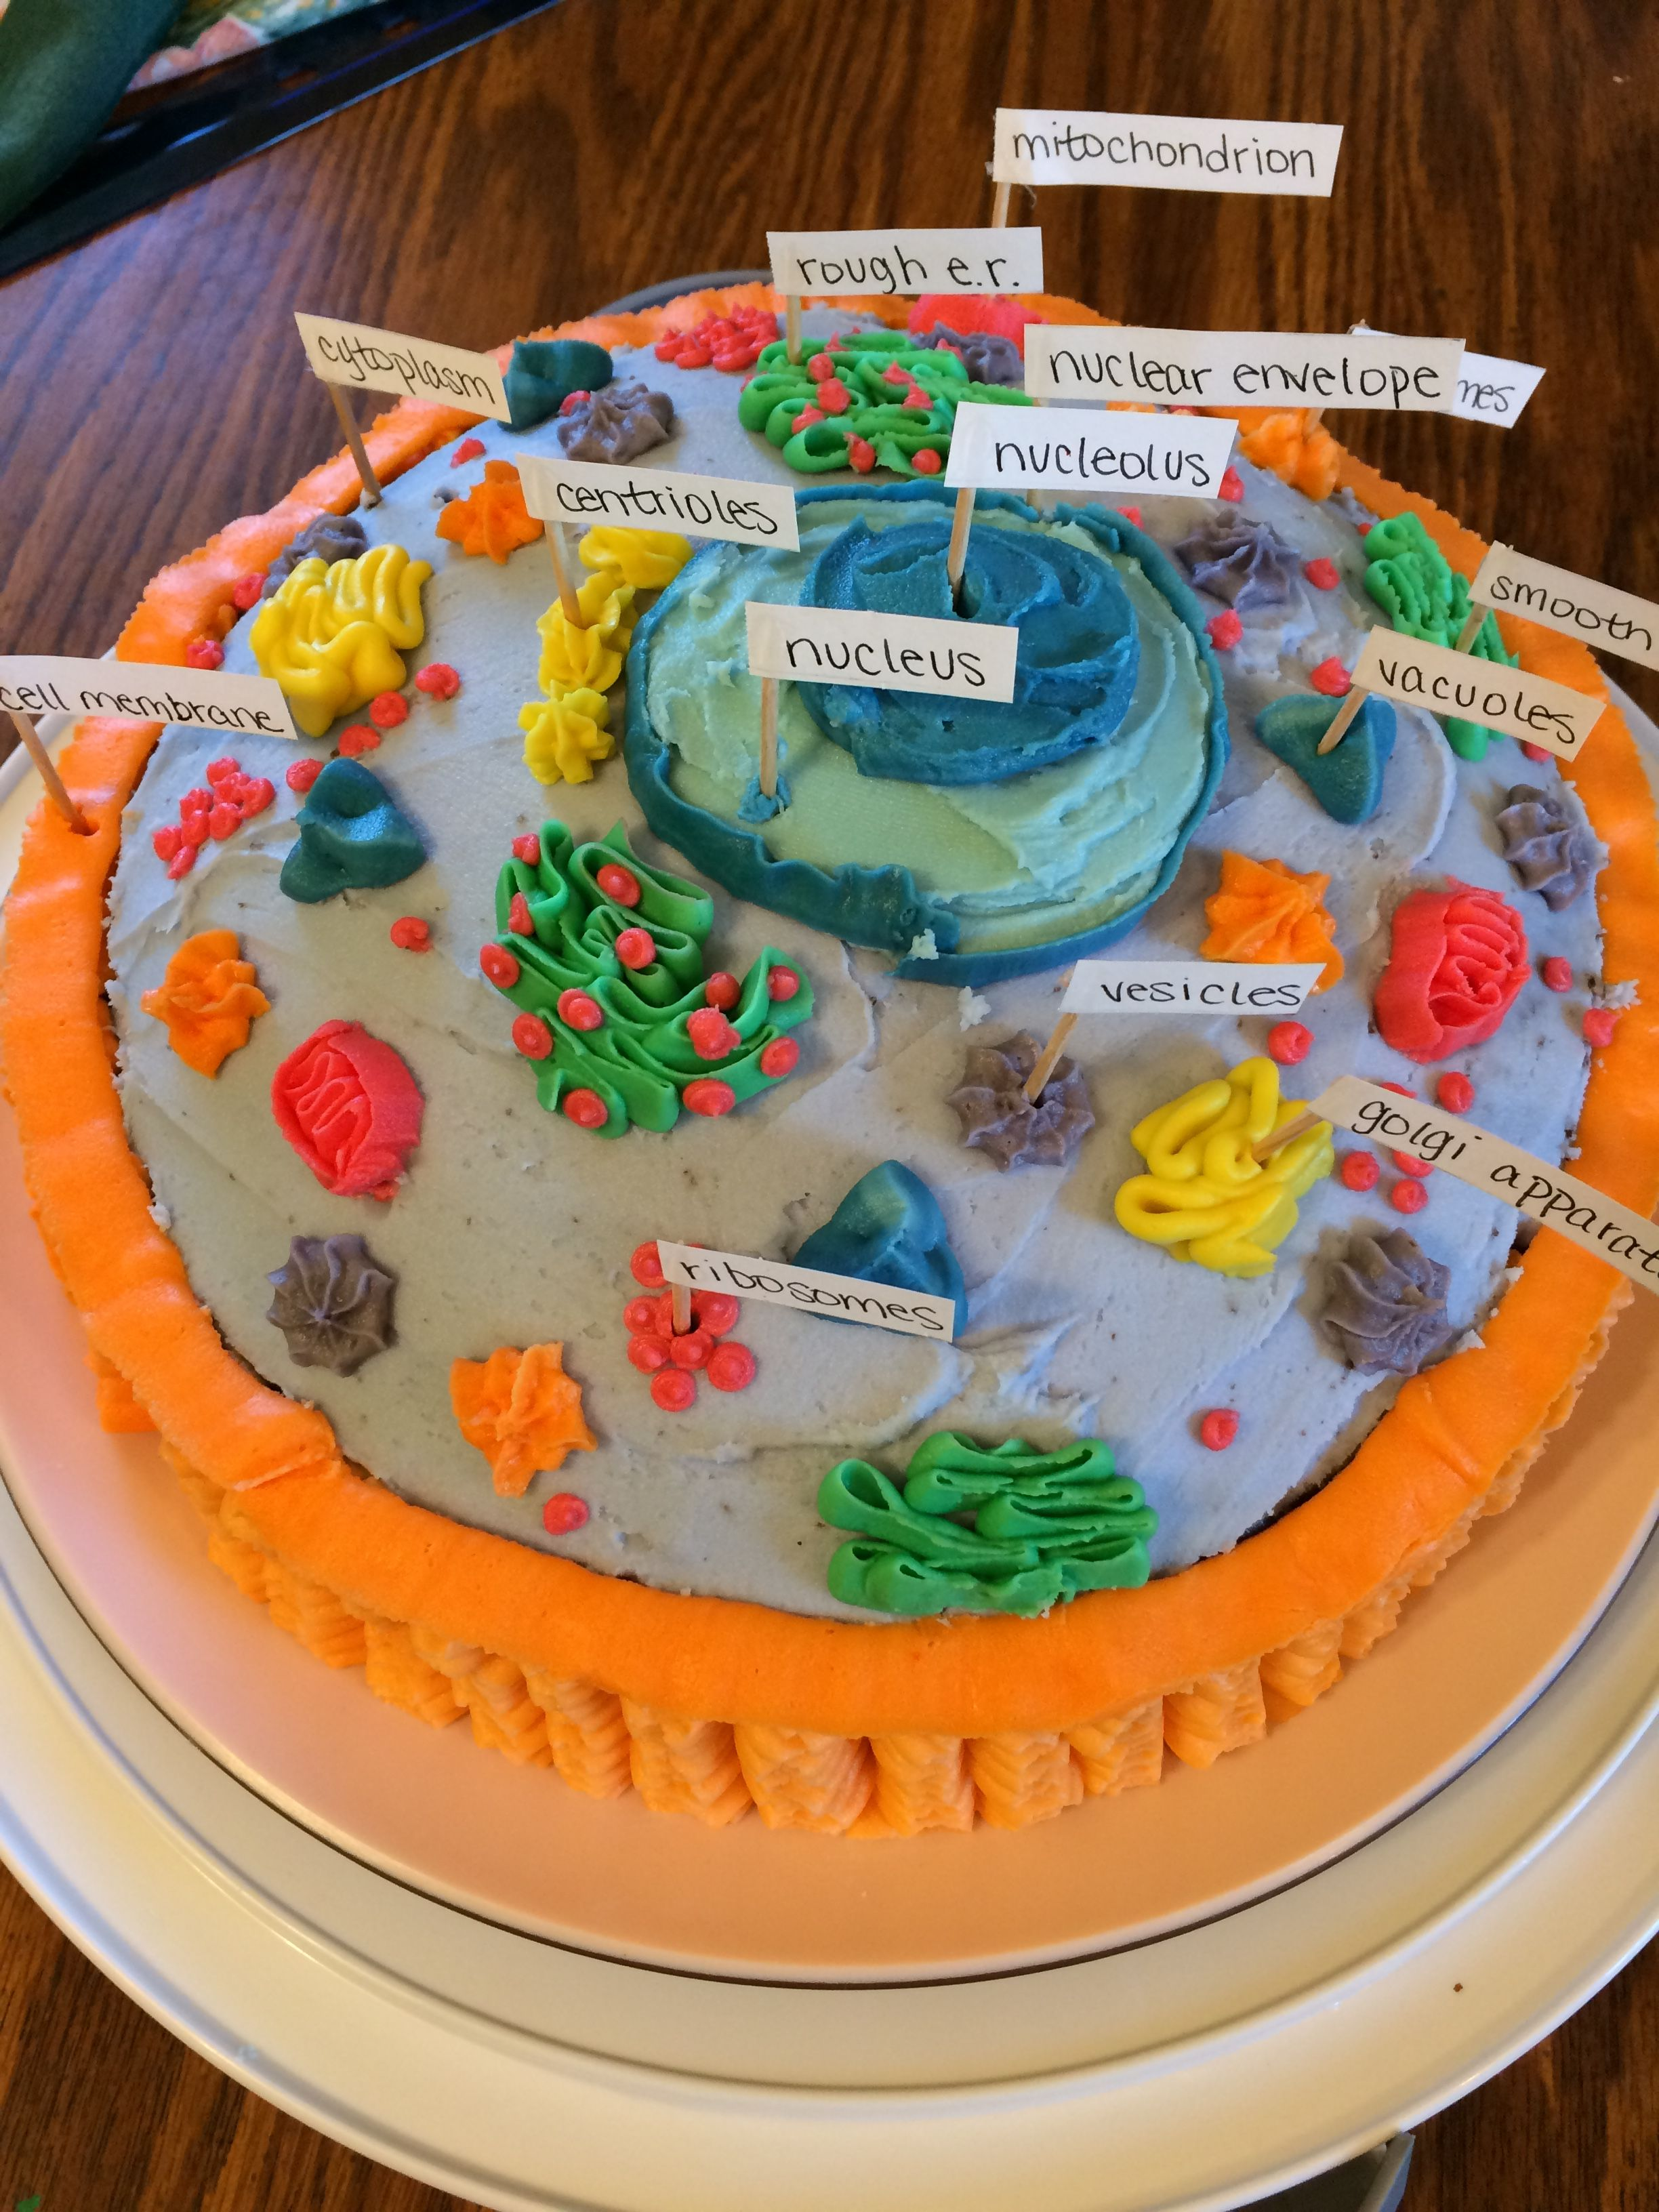 Animal Cell Project Made Of Cake With Images Animal Cell